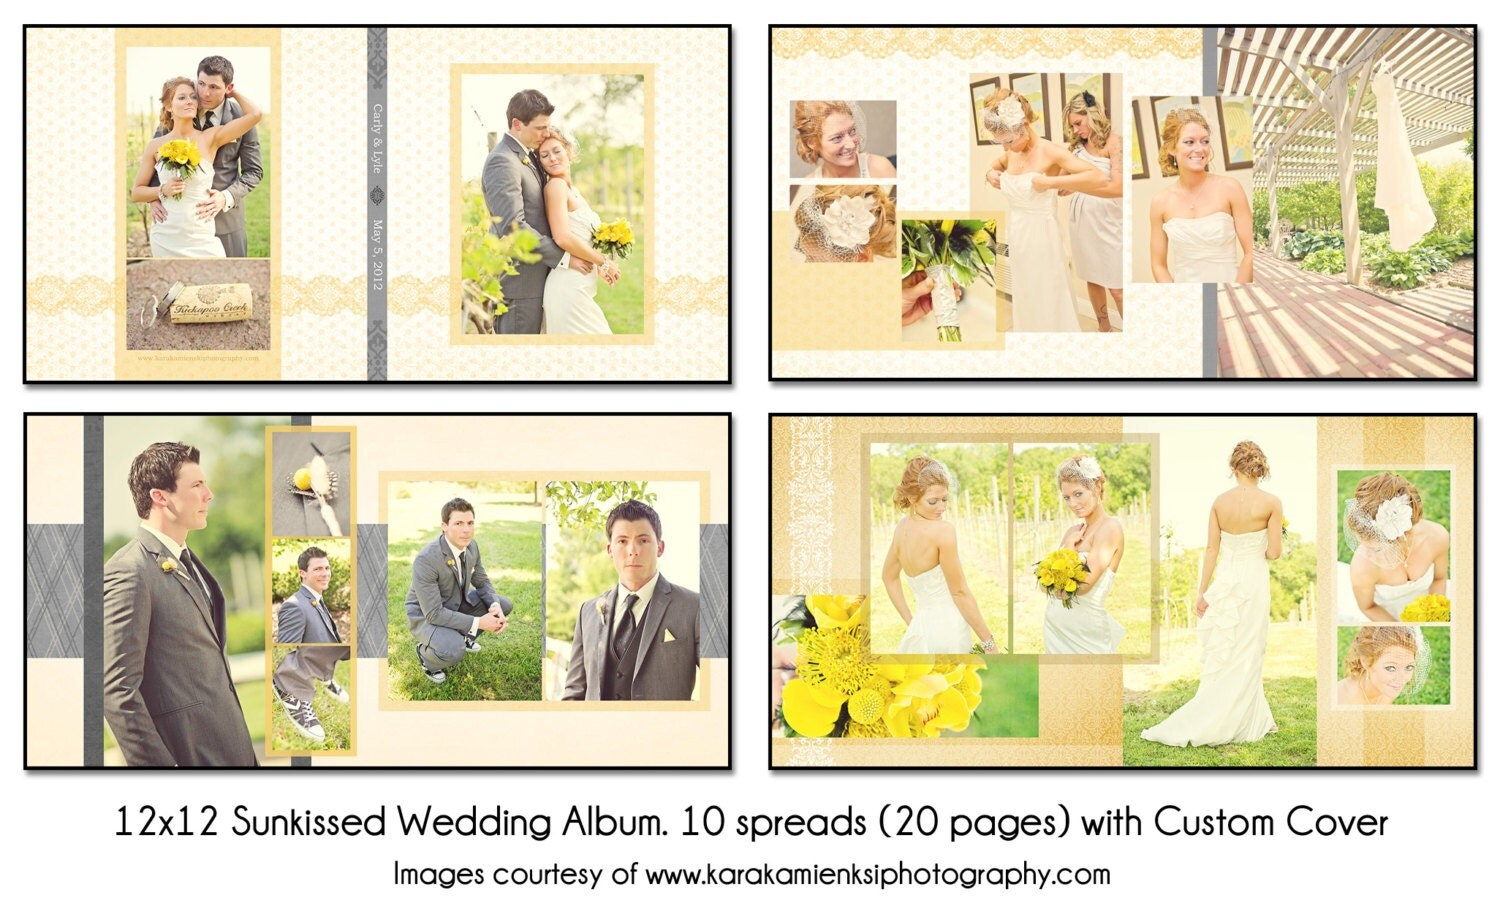 How to scrapbook wedding album - Psd Wedding Album Template Sunkissed 12x12 10 Spread 20 Page Design With Custom Cover